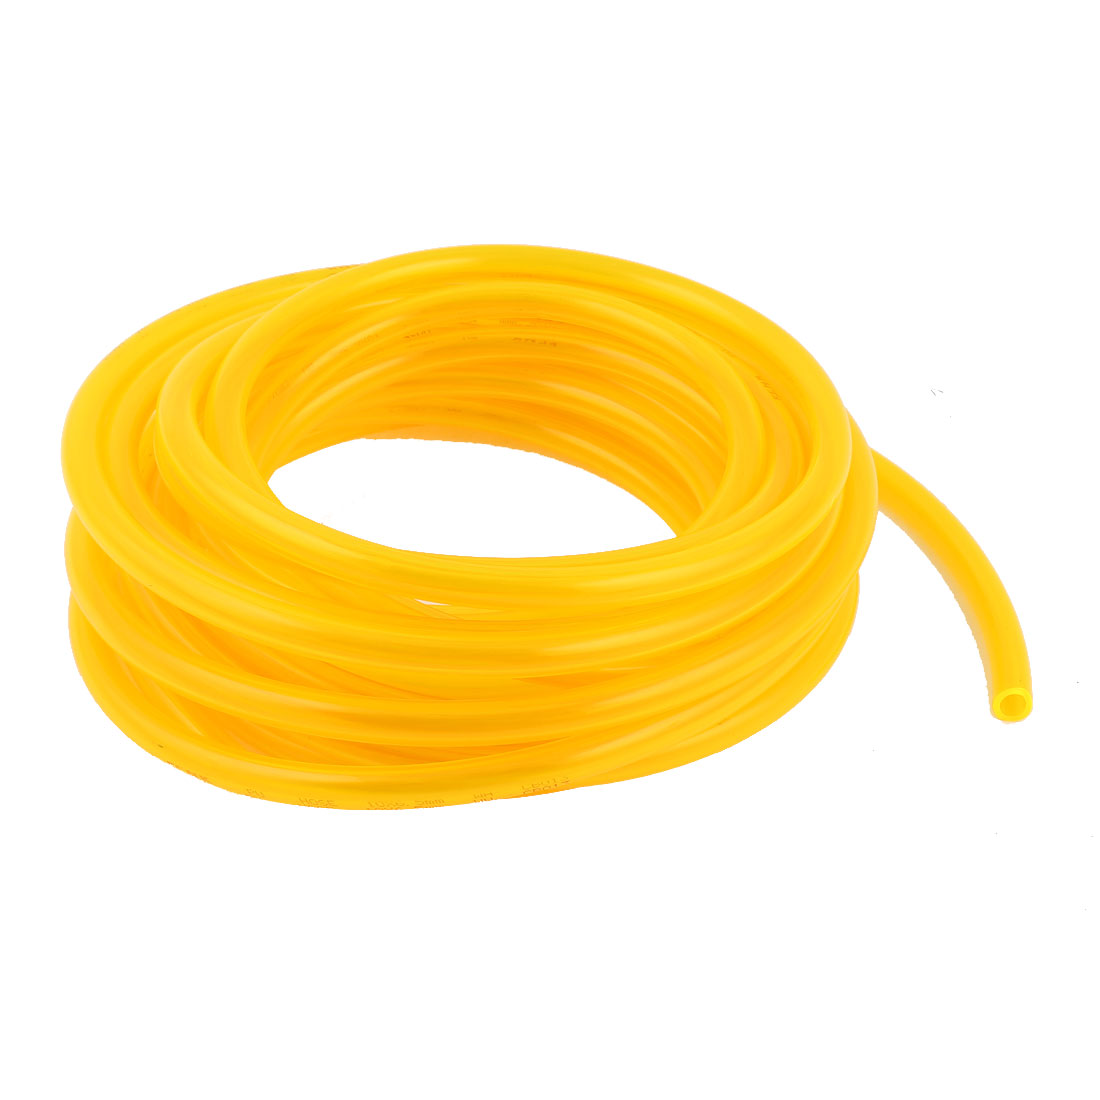 25m 82ft 10mmx6.5mm Pneumatic Polyurethane PU Hose Tube Pipe Clear Yellow